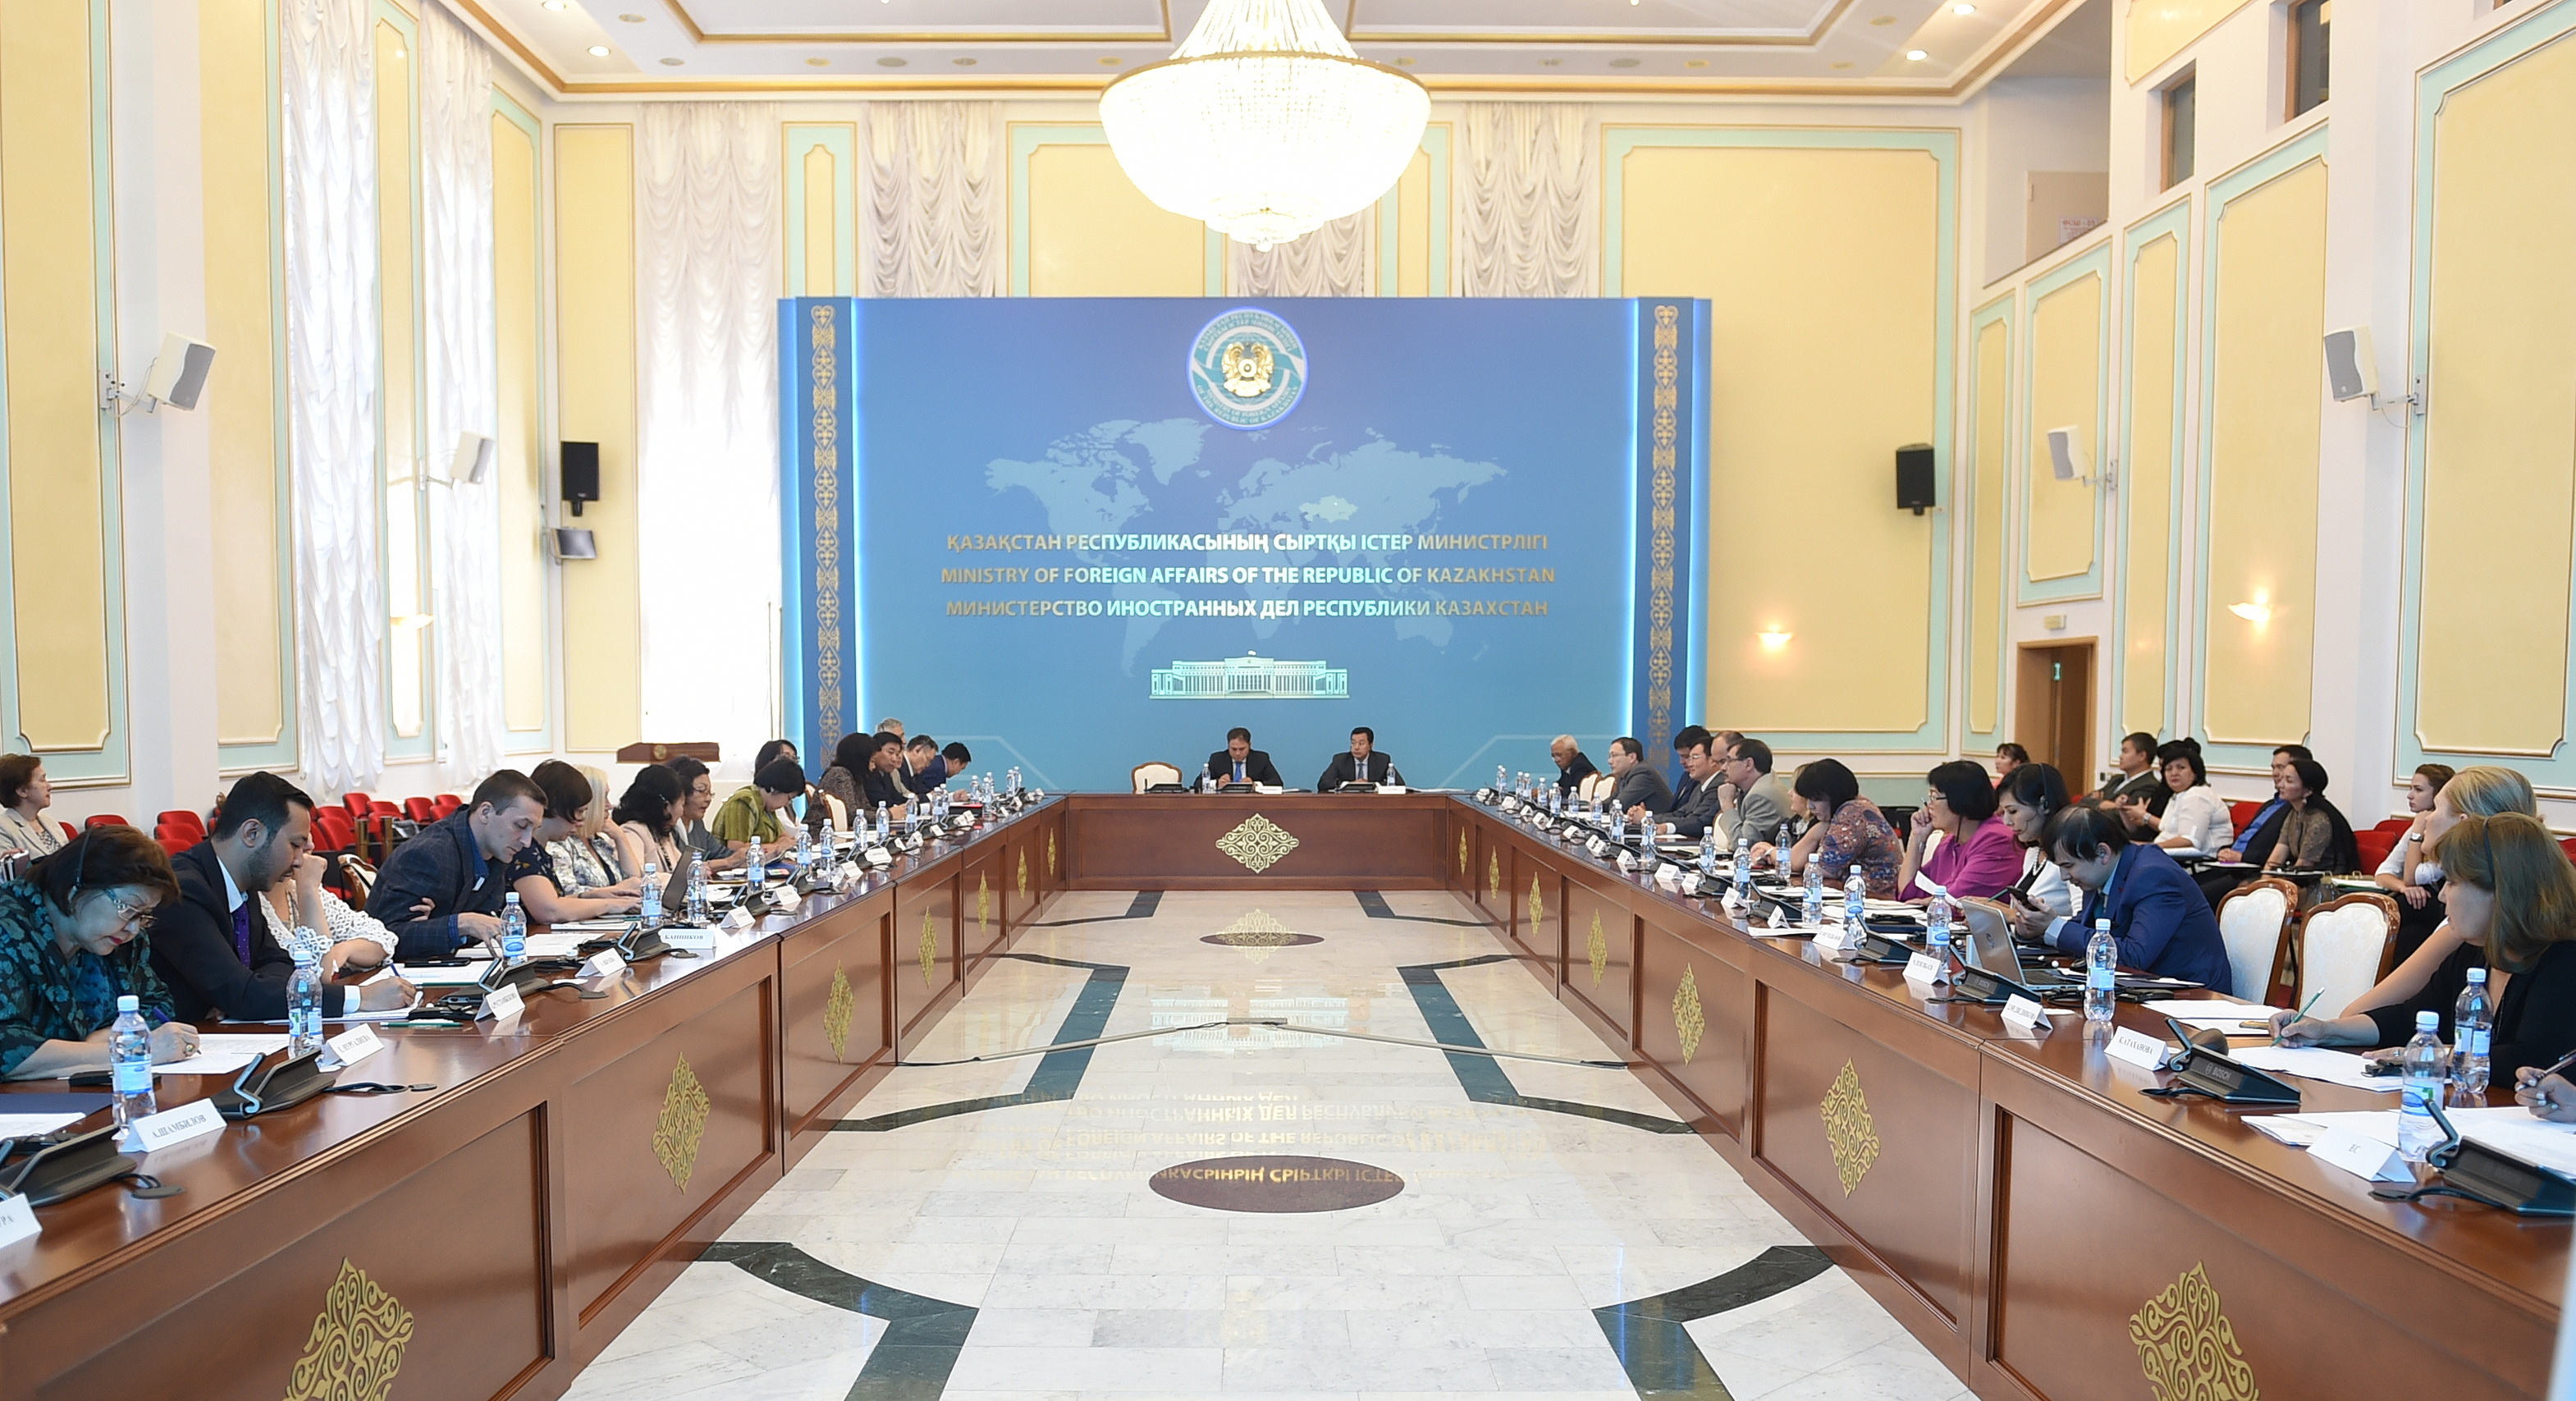 NGOs and government discuss civil issues at Kazakh MFA - The Astana